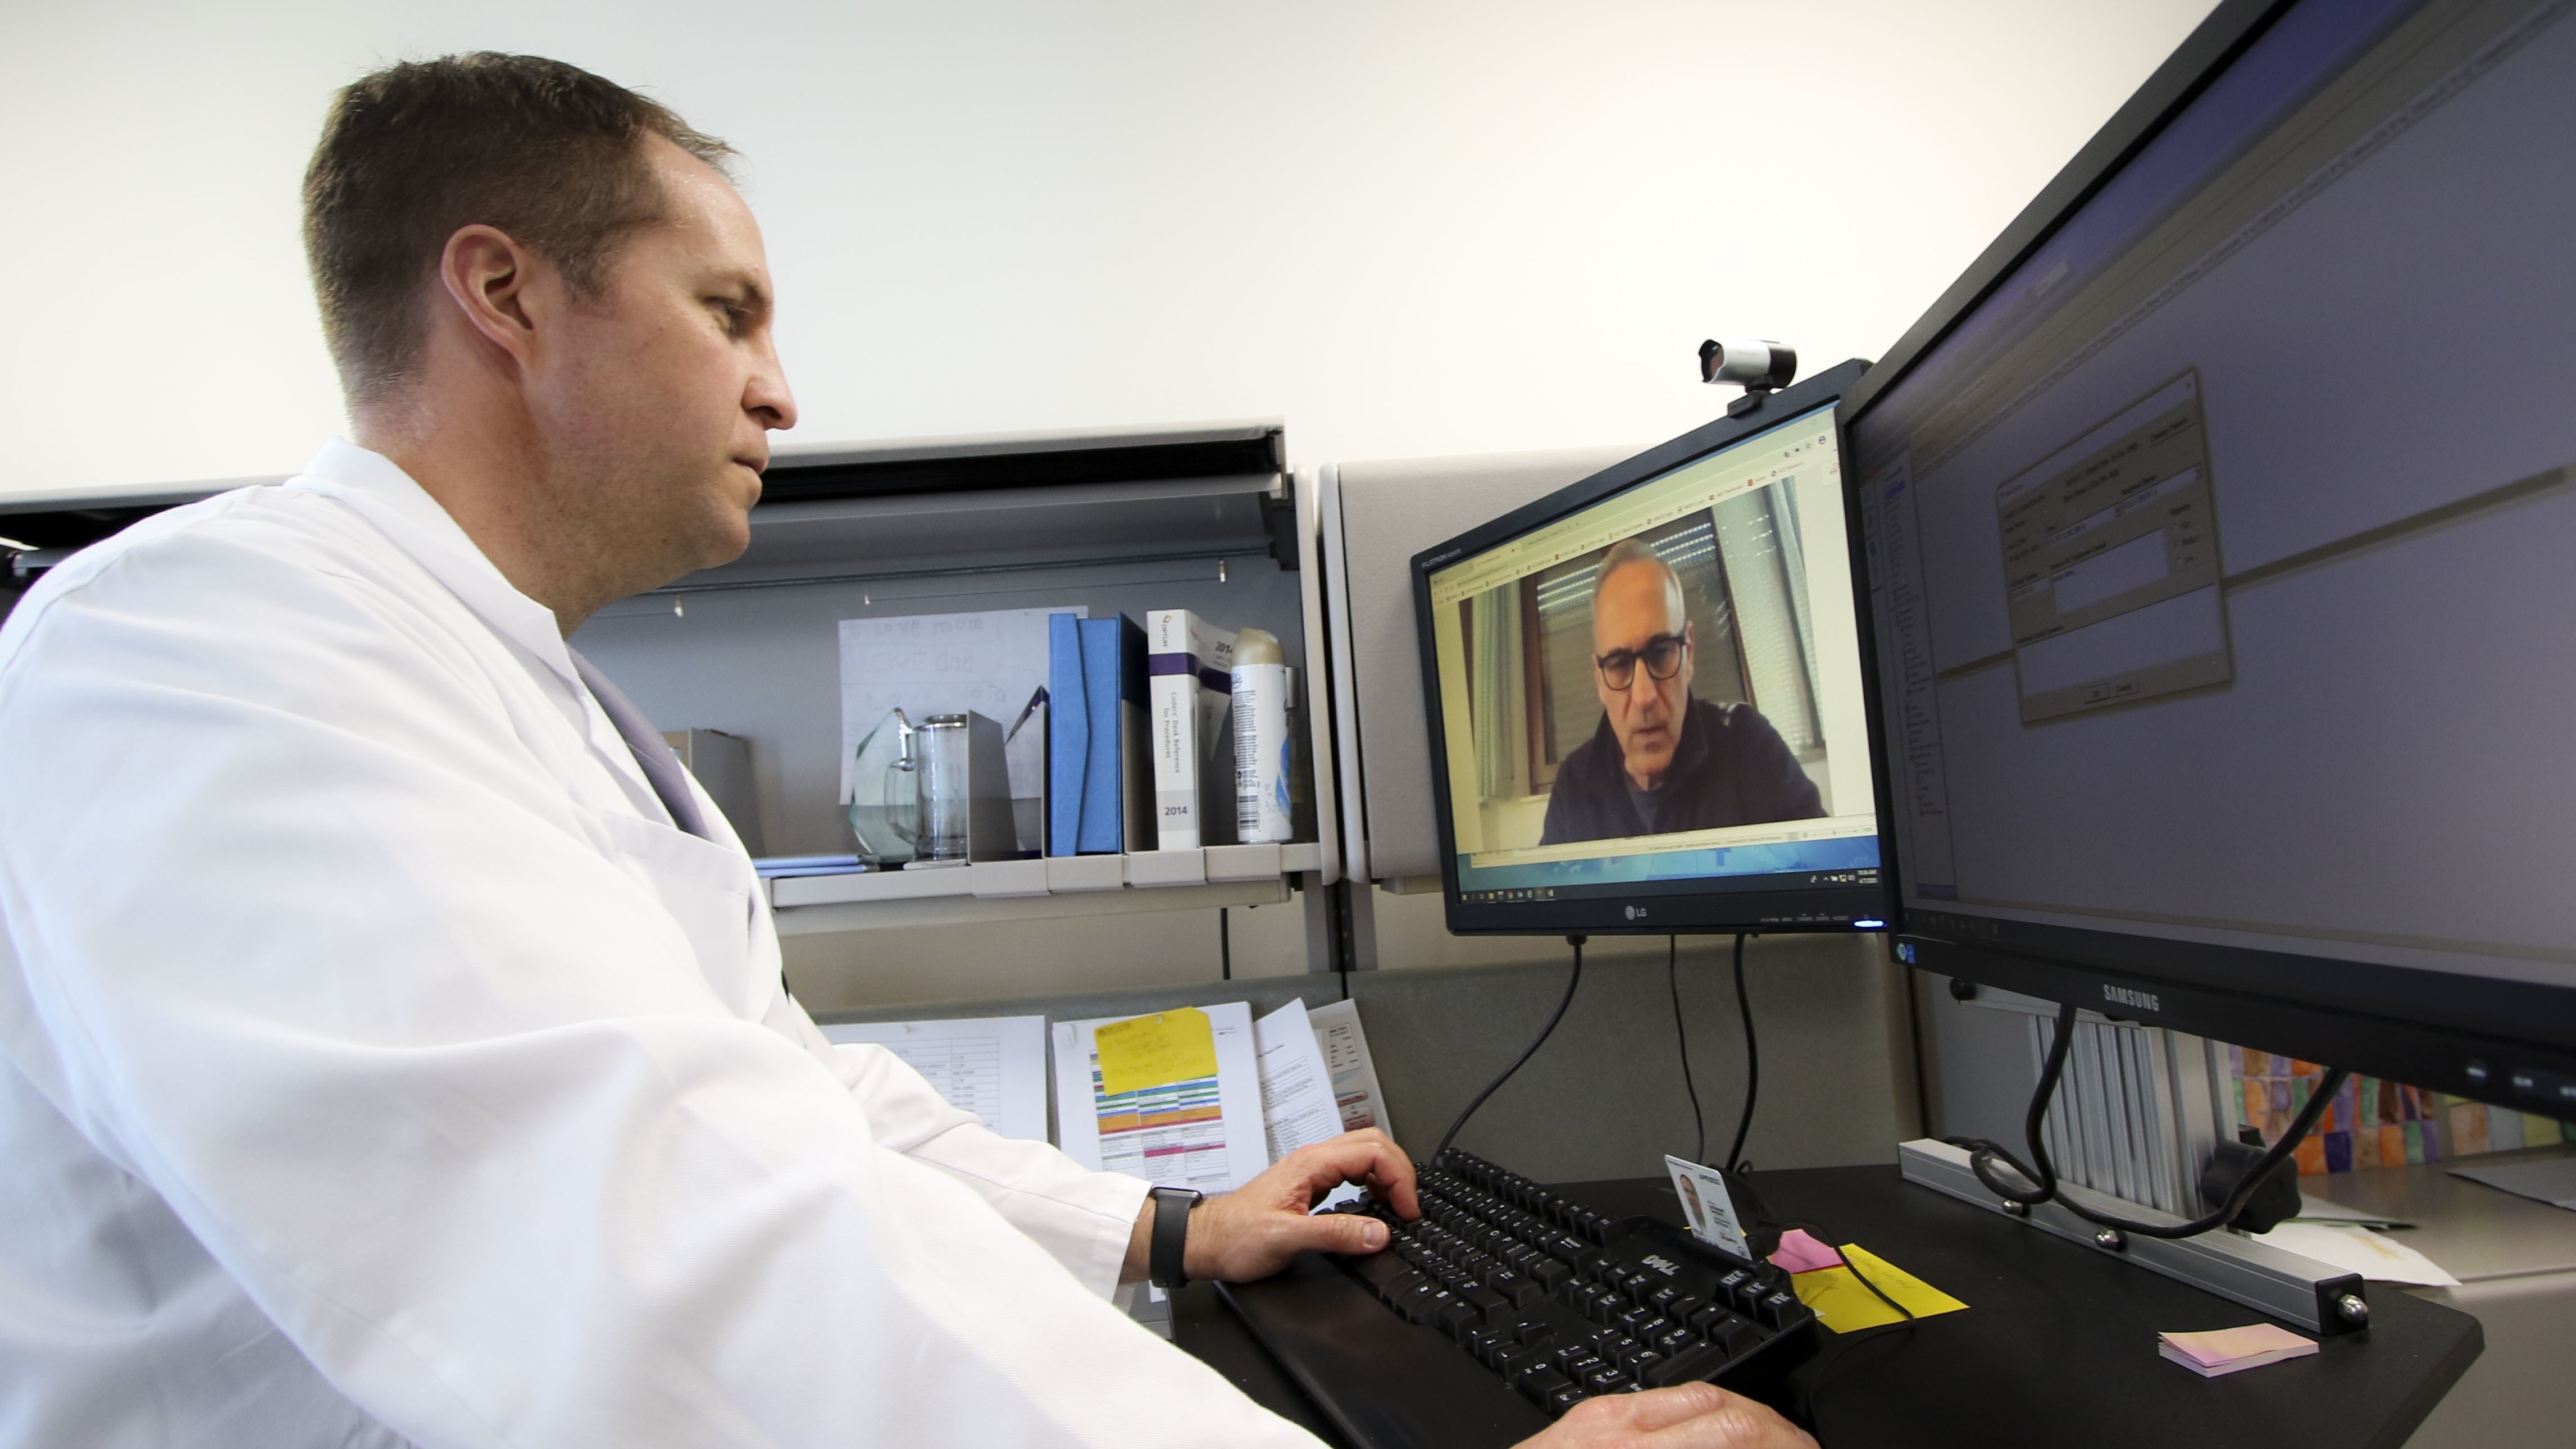 A U.S. Air Force surgeon conducts a virtual health appointment. (Photo: Department of Defense/Marcy Sanchez )